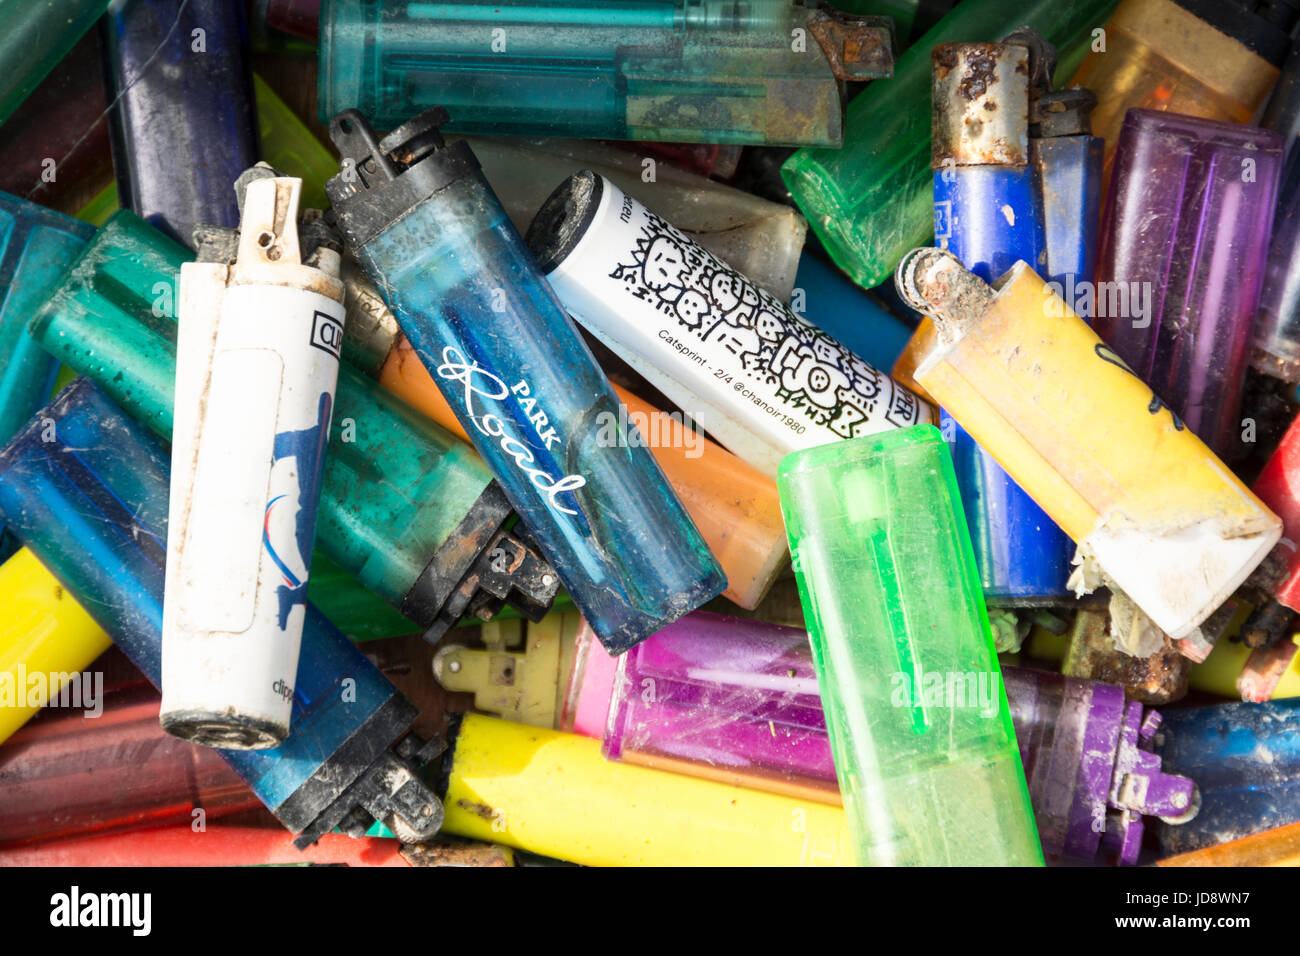 Discarded disposable plastic lighters - Stock Image